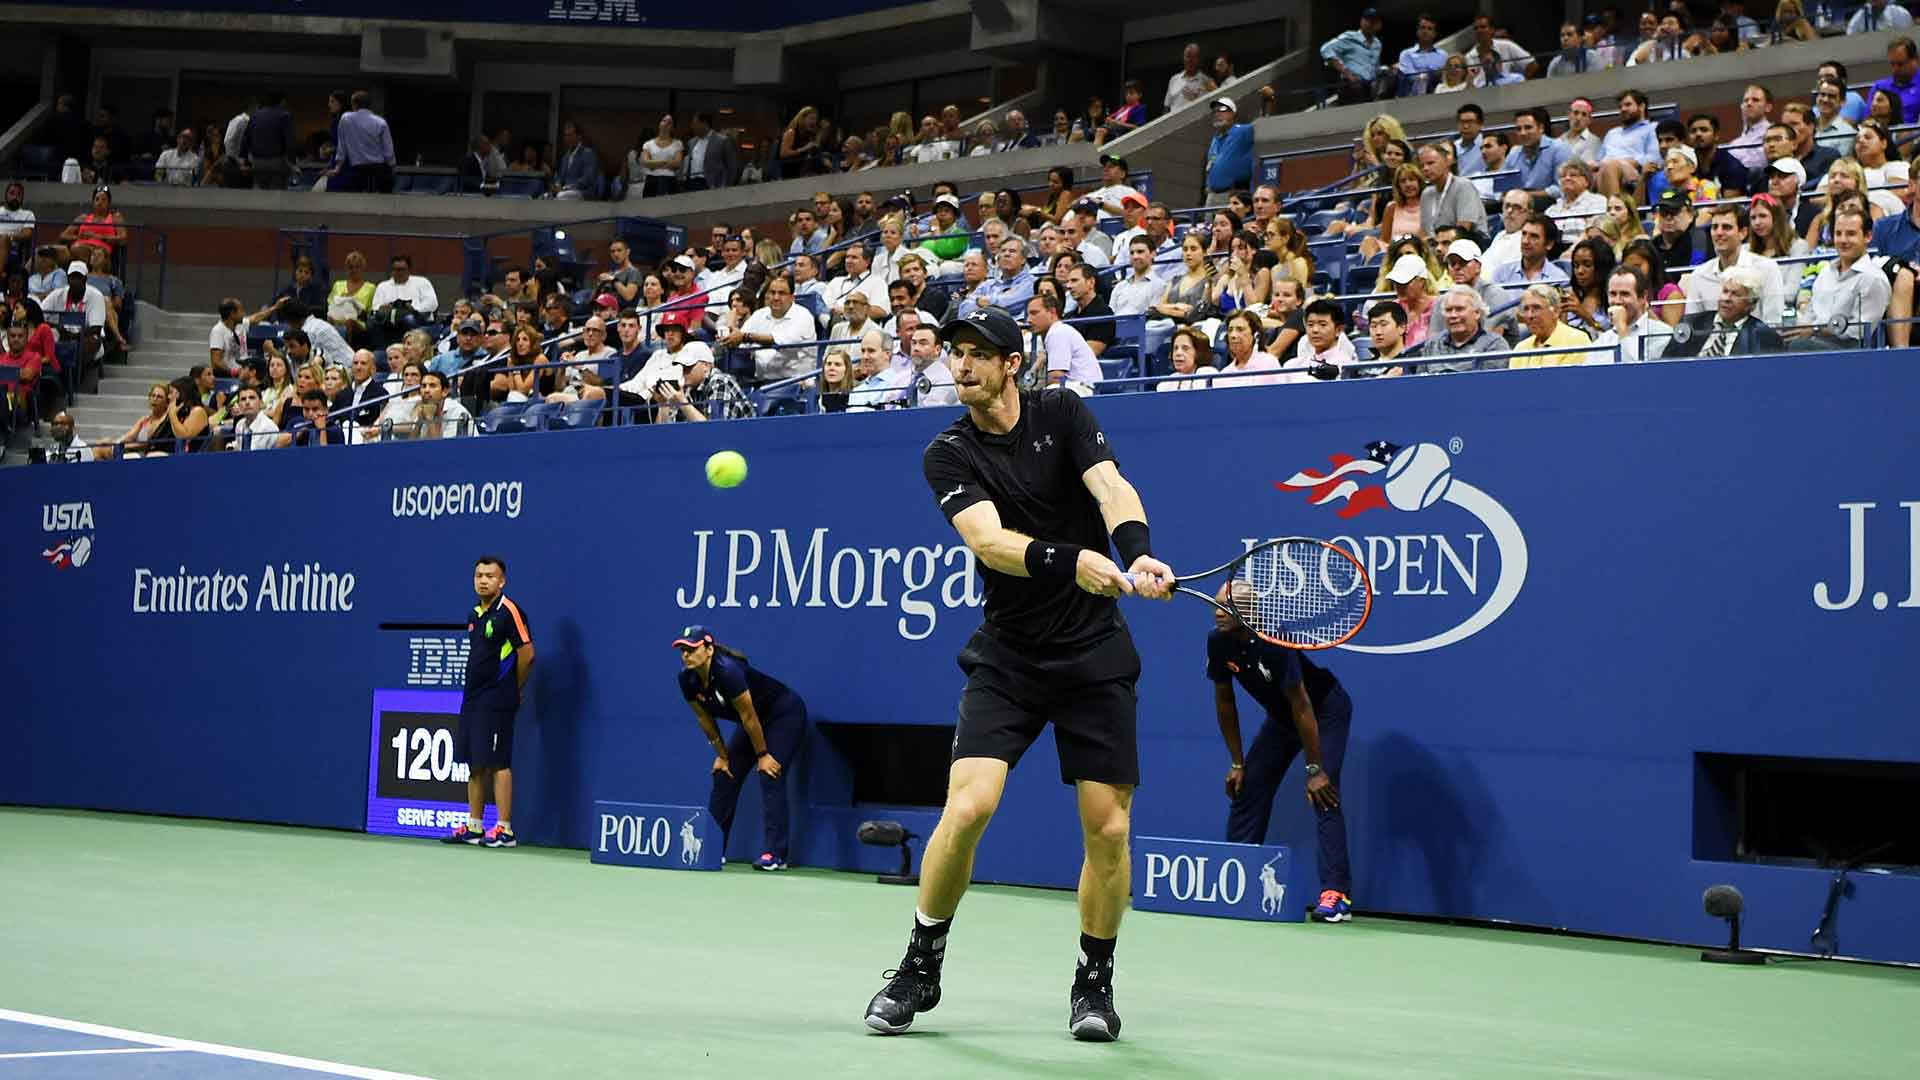 murray-tuesday-1-us-open-2016